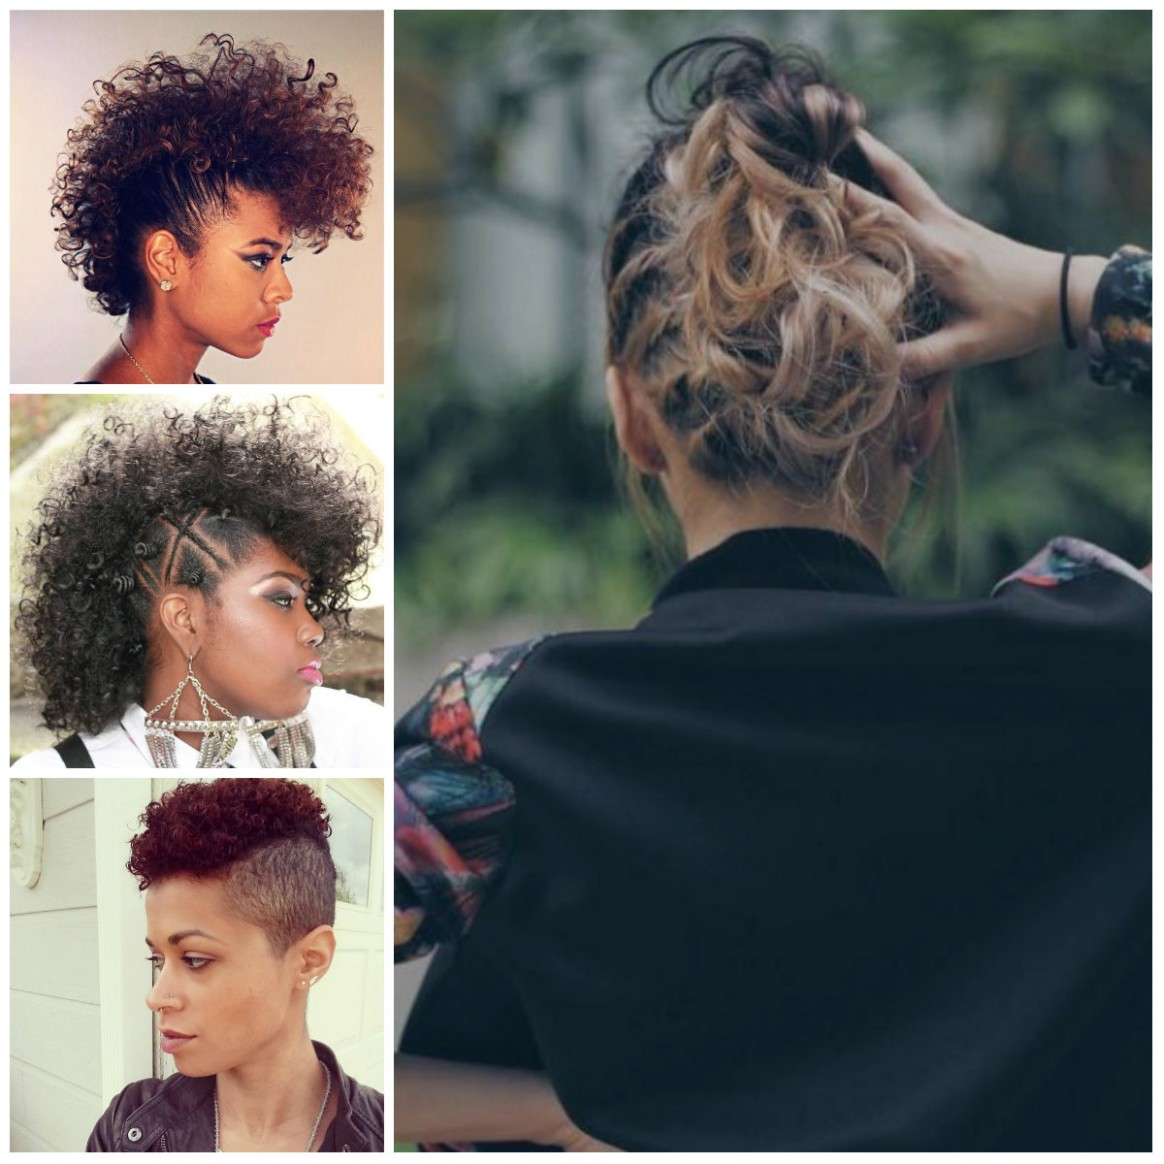 Curly Mohawk Hairstyles for Women 12  12 Haircuts, Hairstyles